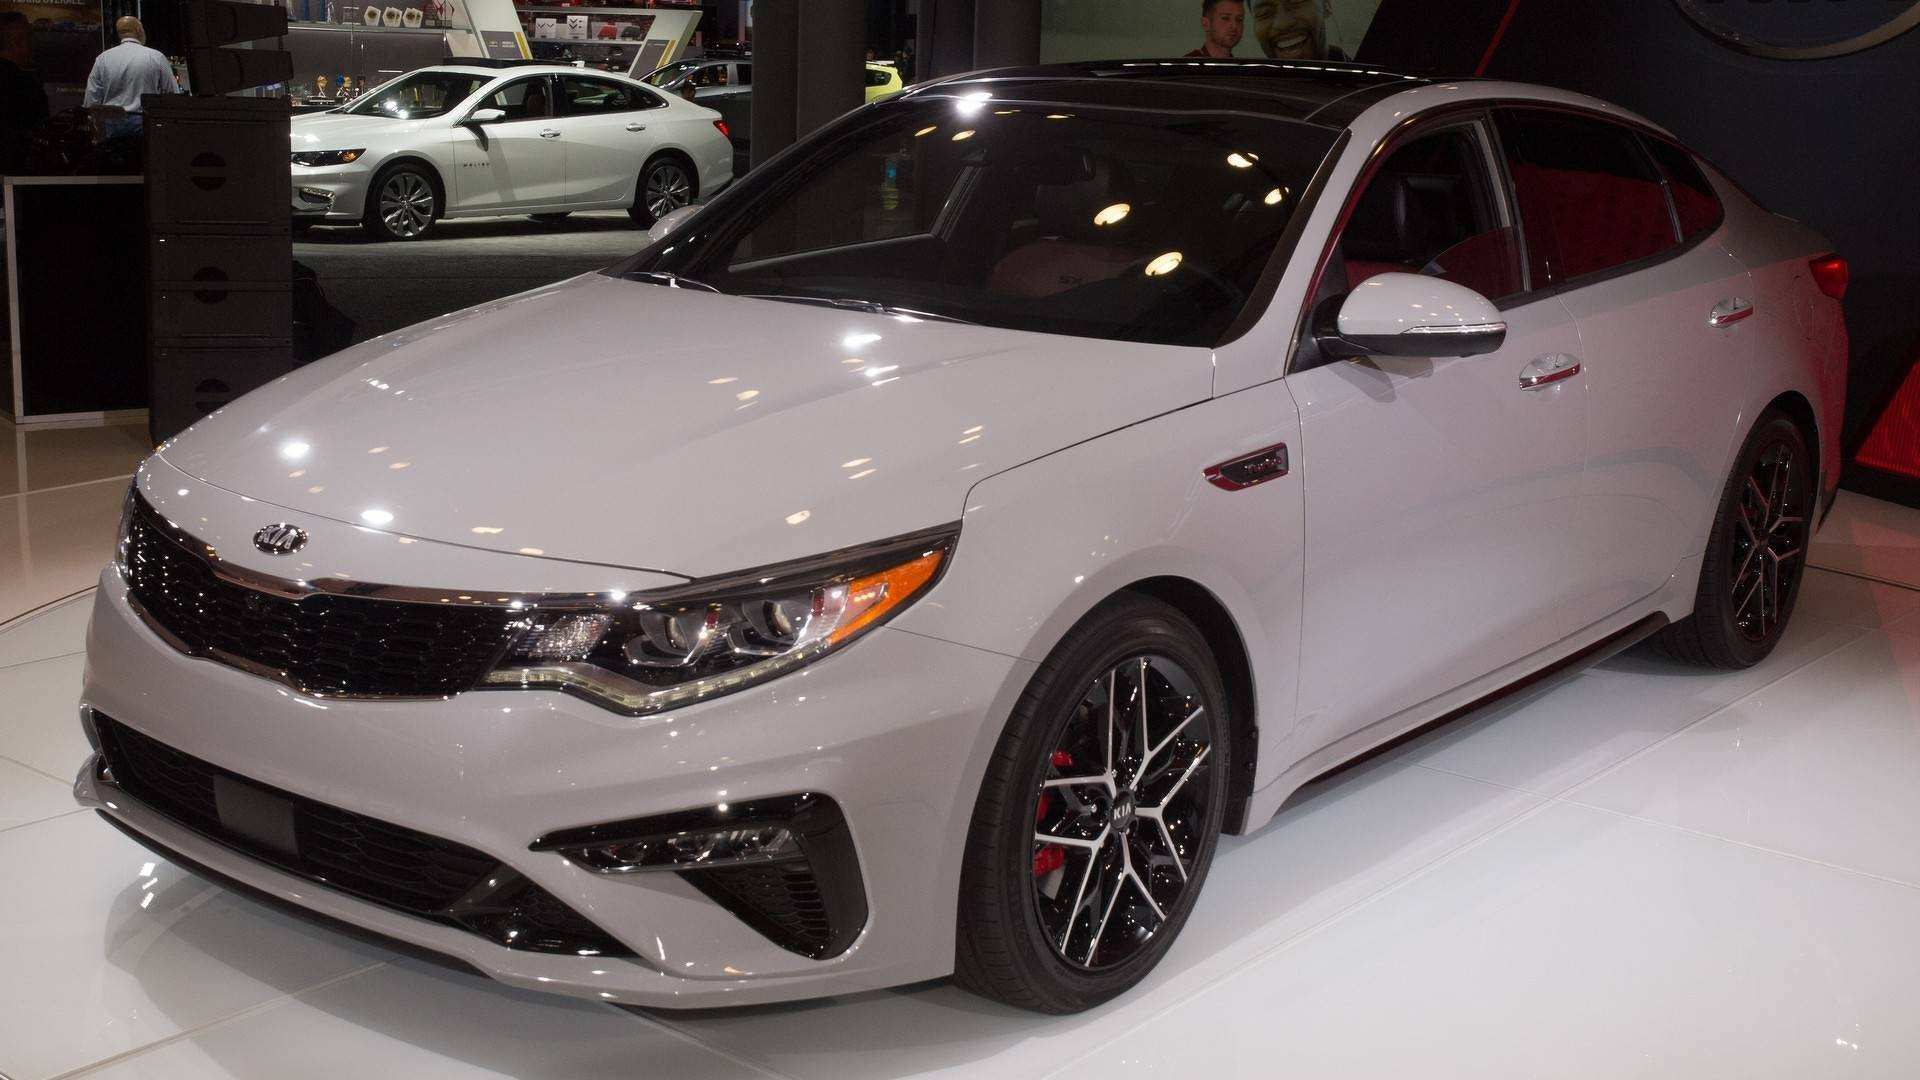 85 Best Review 2019 Kia Usa Rumors by 2019 Kia Usa